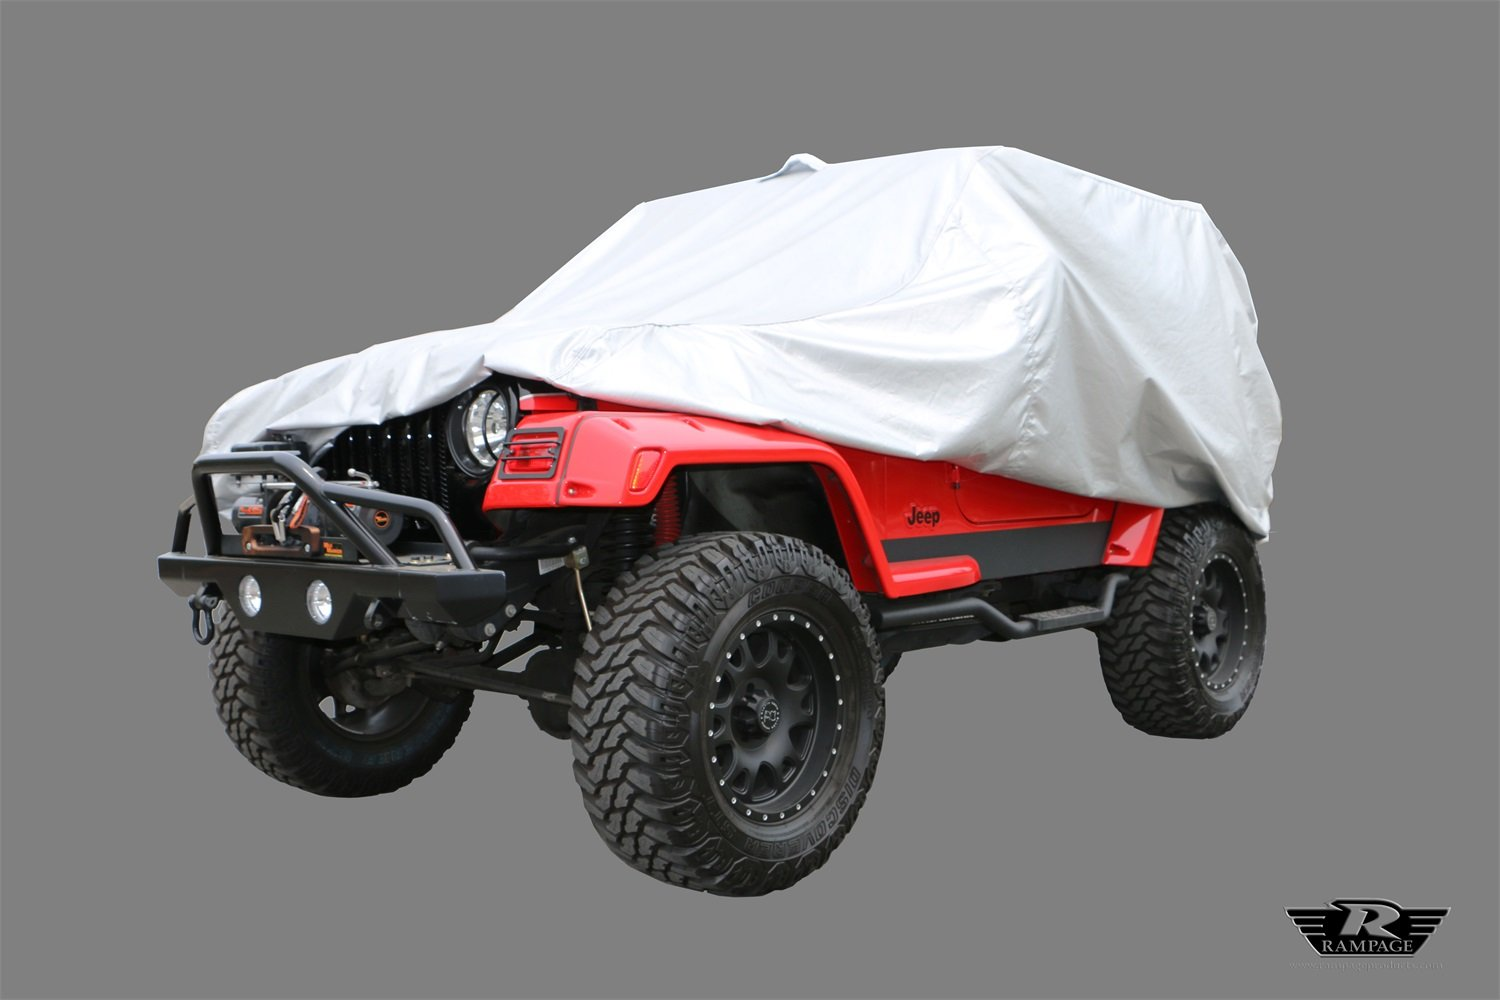 Rampage Products 2201R Silver Multiguard All Weather'Rain or Shine' Custom Vehicle Covers (includes lock, cable and storage bag) for 1976-2006 Jeep YJ/TJ